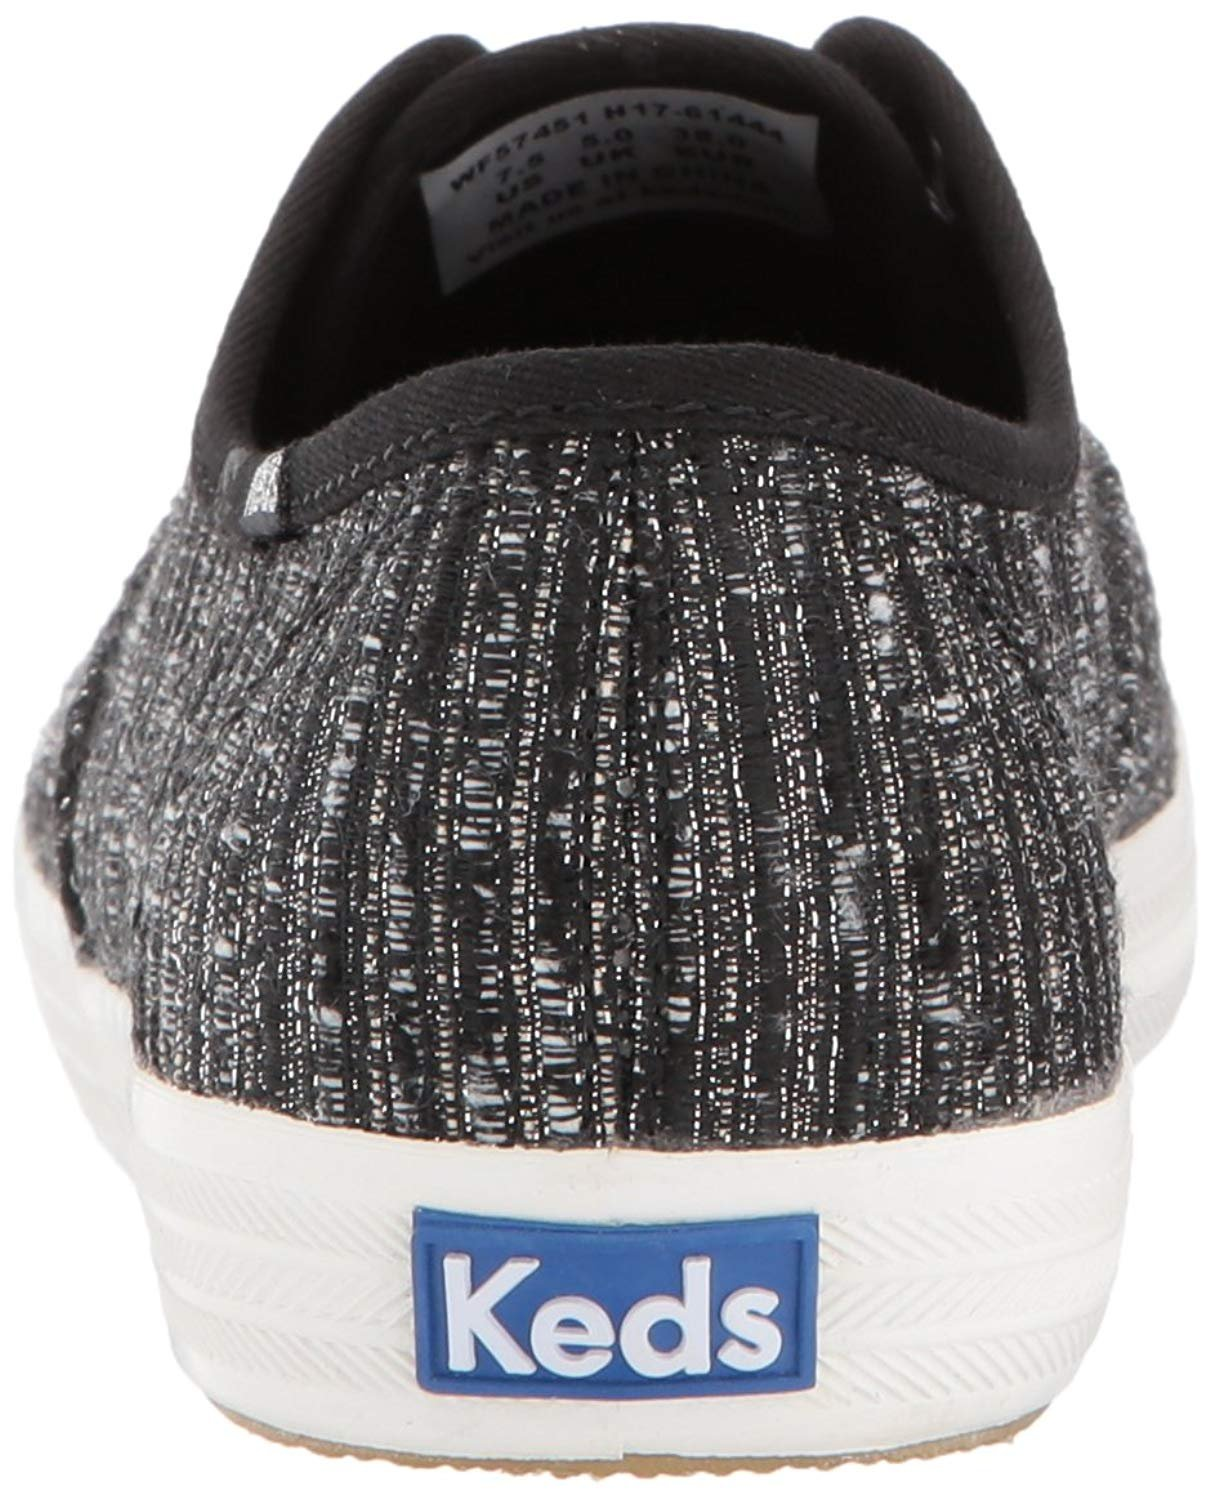 5328b93df6f83 Keds - Keds Women s Champion Lurex Stripe Fashion Sneaker